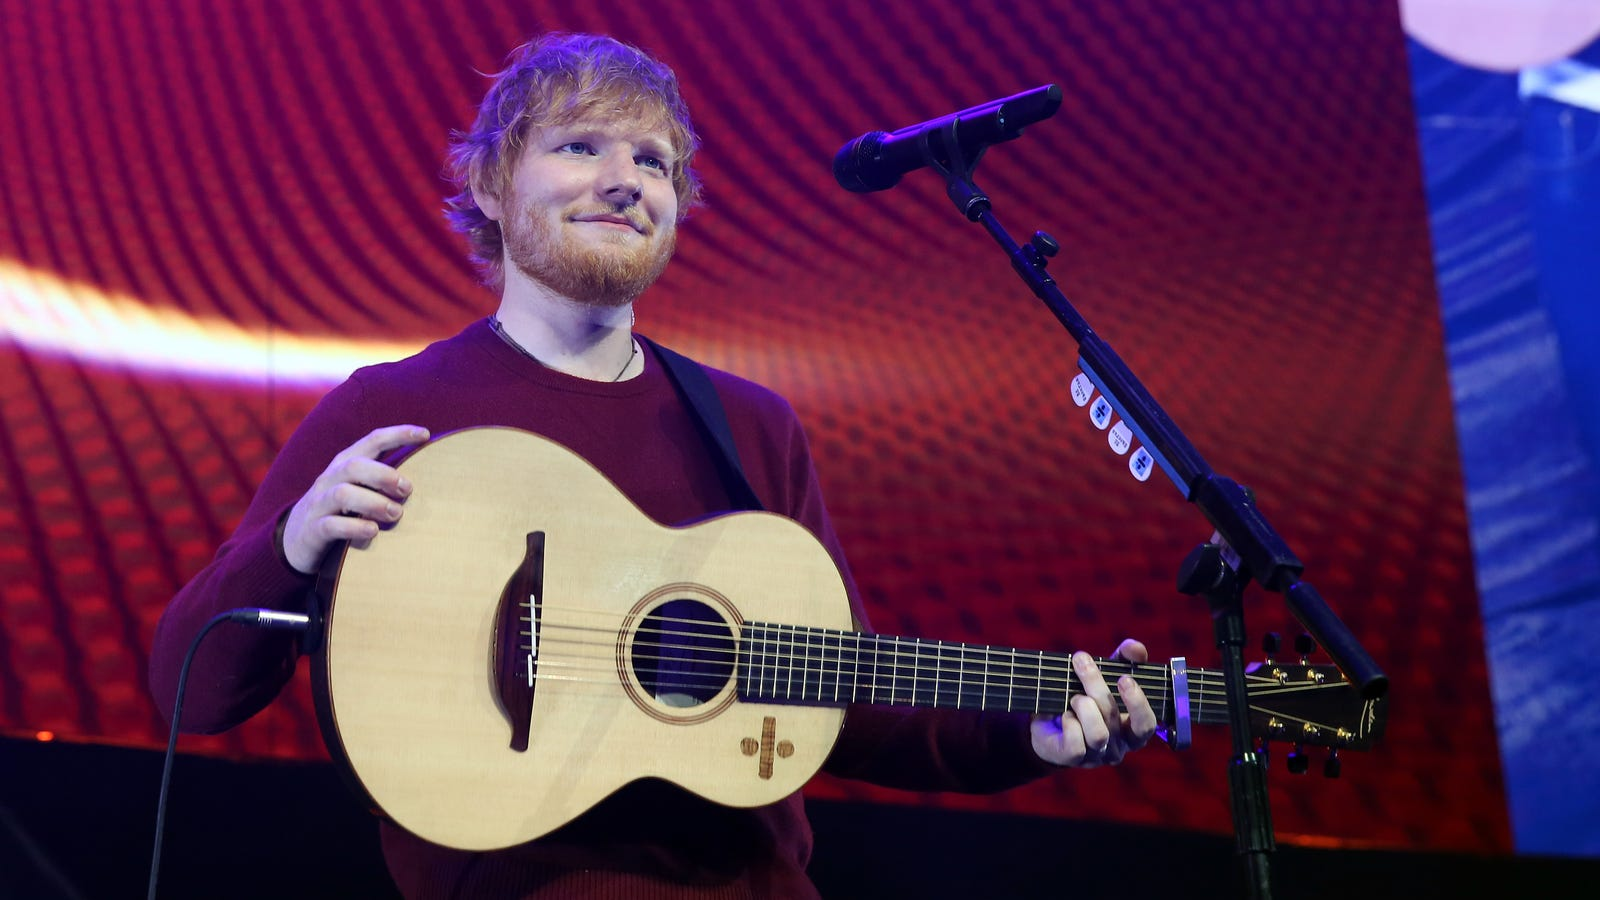 It's Rumor Time: Ed Sheeran may get to cameo in Star Wars now, too